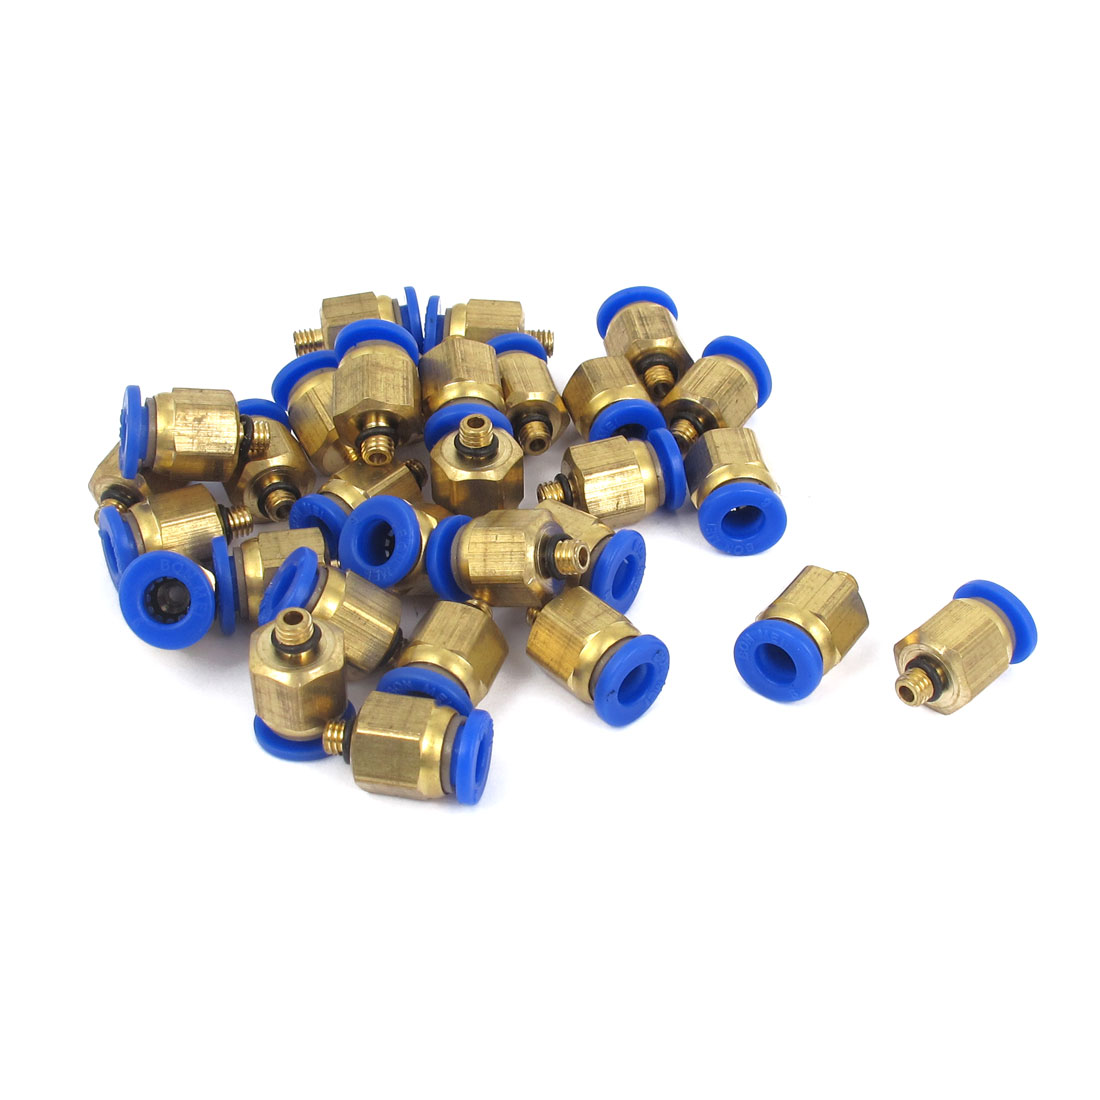 6mm Tube M5 Male Thread Quick Air Fitting Coupler Connector 30pcs